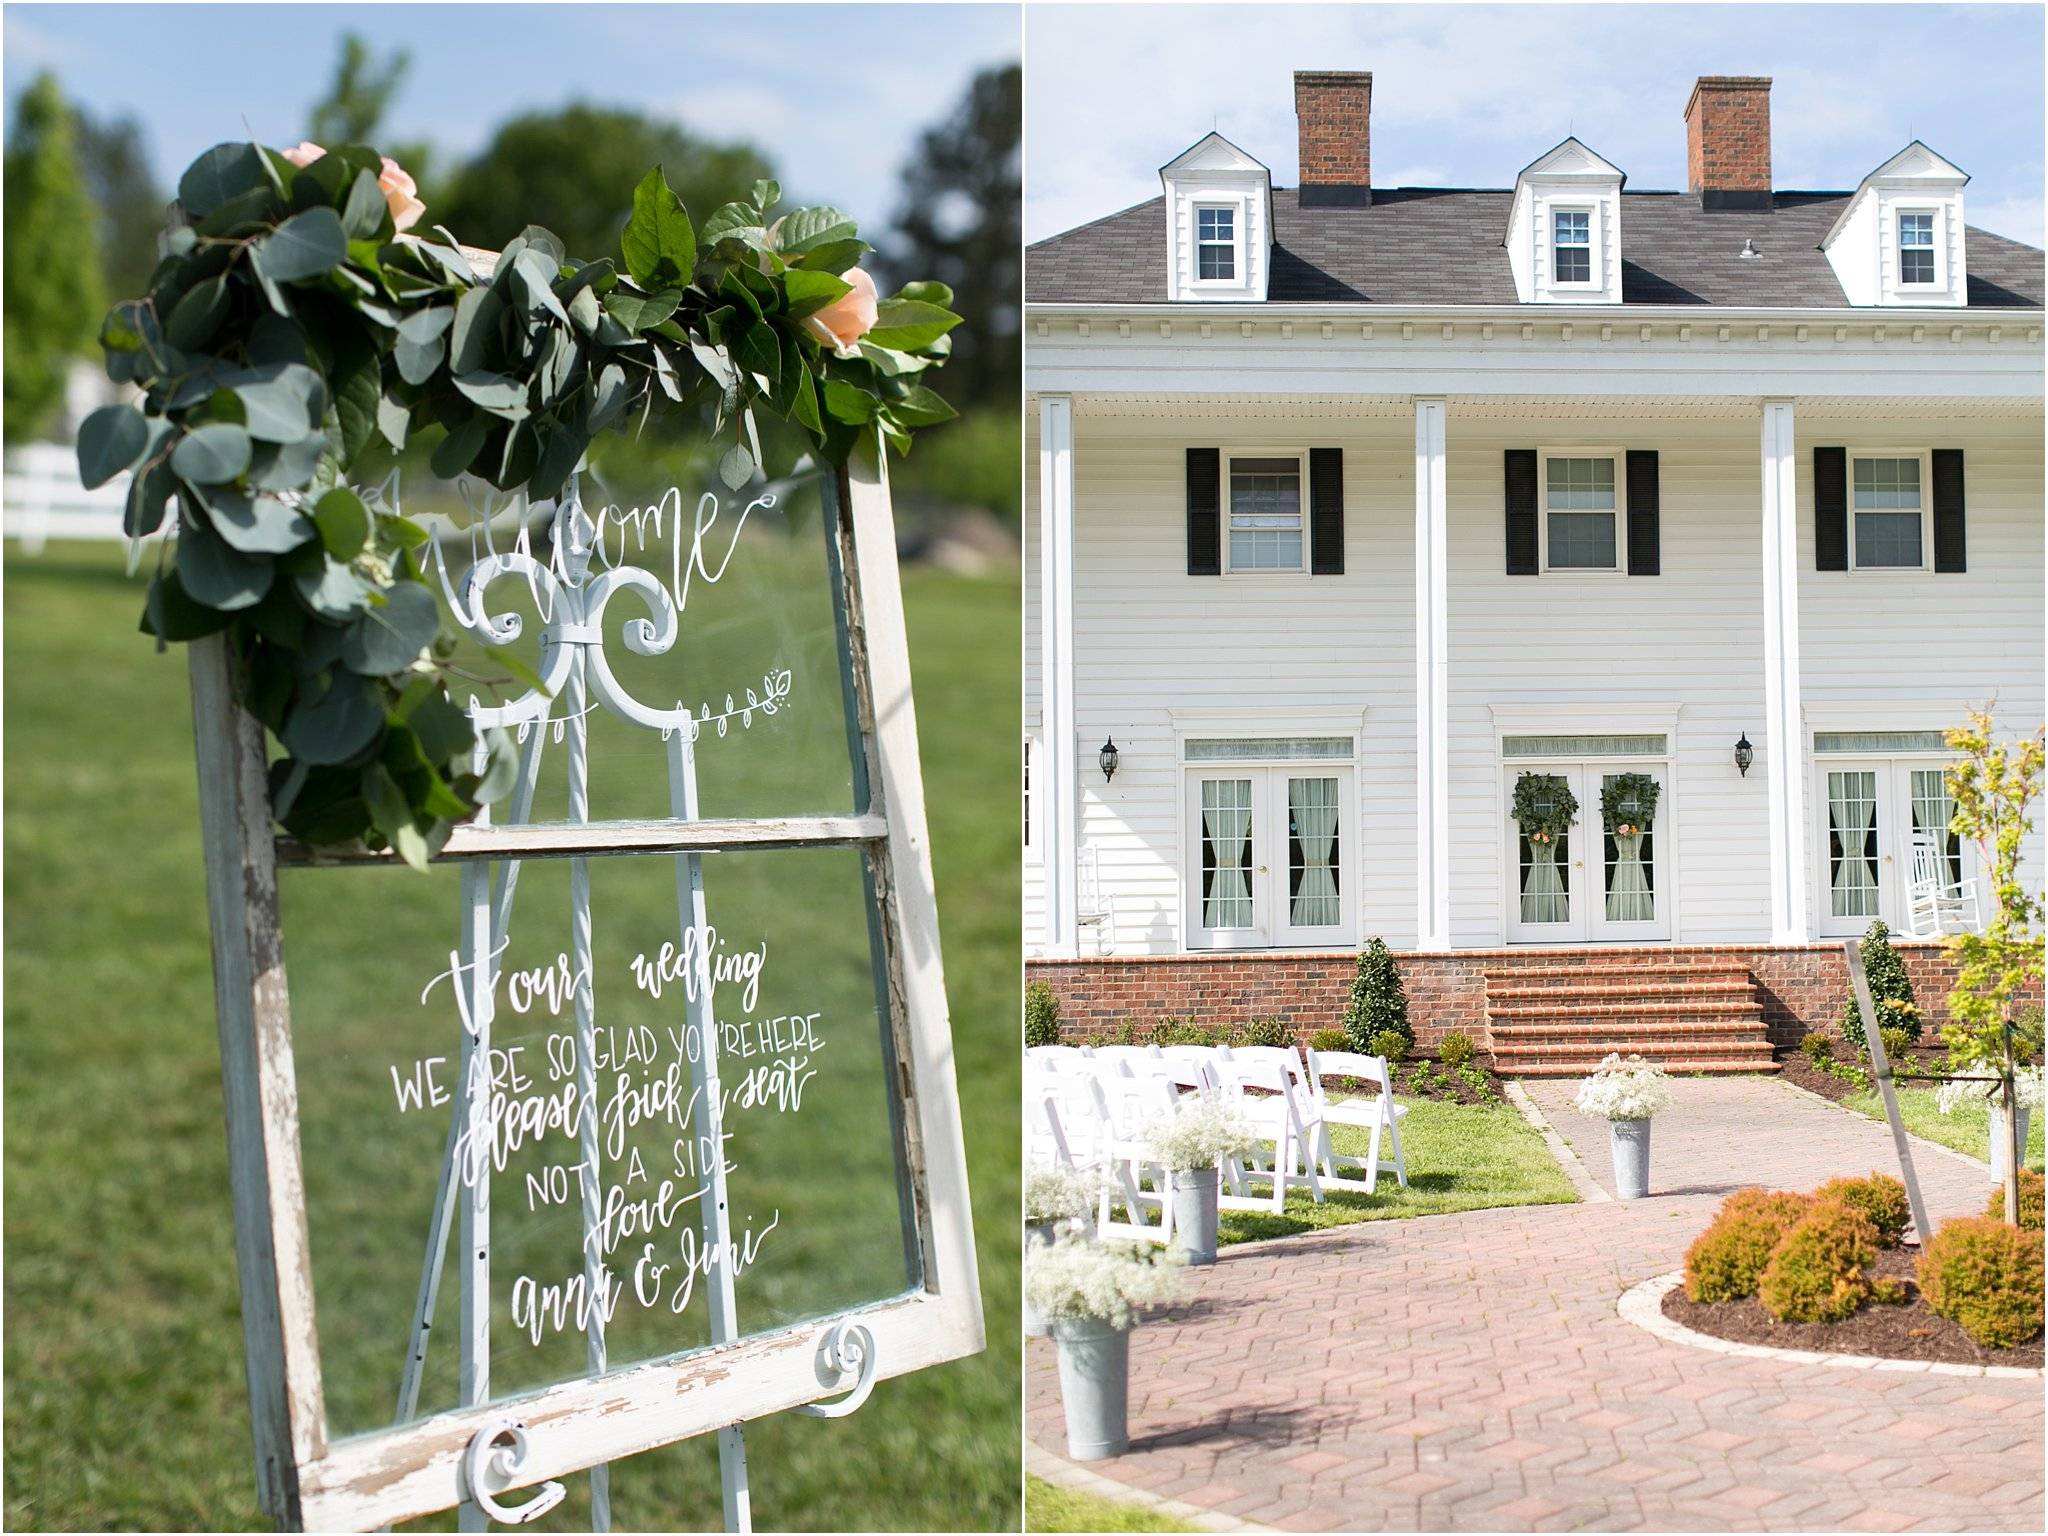 jessica_ryan_photography_holly_ridge_manor_wedding_roost_flowers_jamie_leigh_events_dhalia_edwards_candid_vibrant_wedding_colors_1288